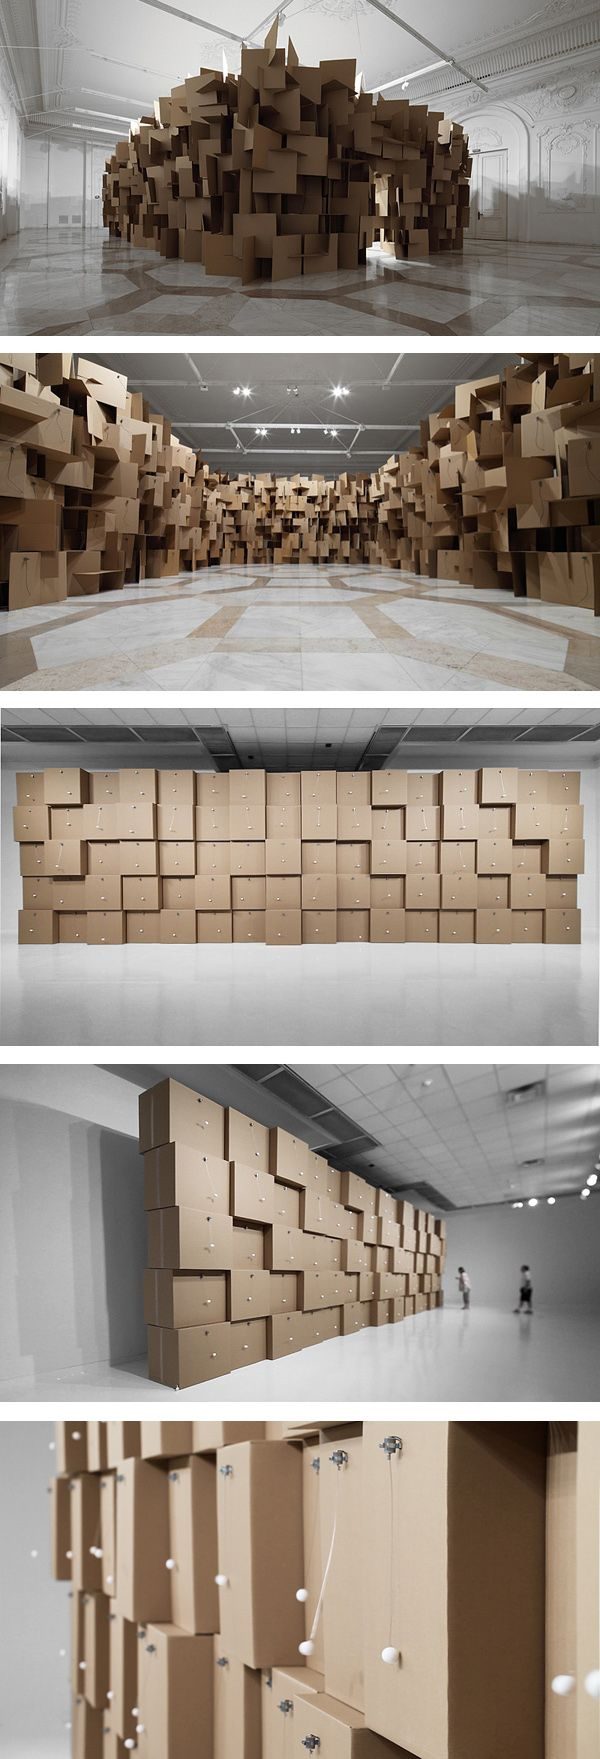 Acoustic architectures: by Zimoun, a sound artist/sculptor who builds different…